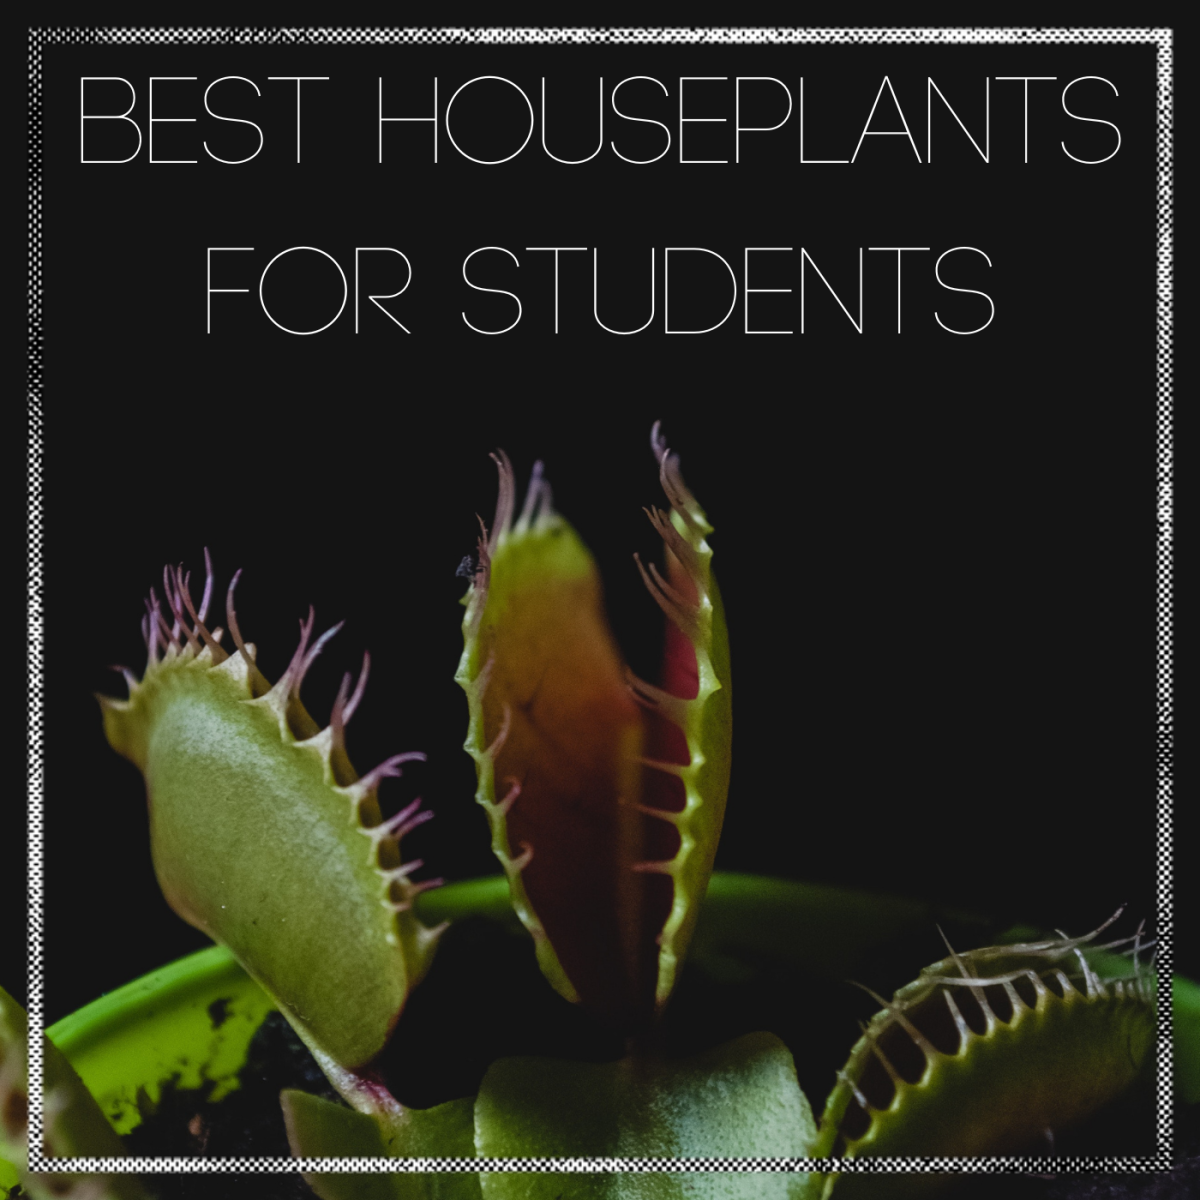 Easy to care for houseplants perfect for college students.